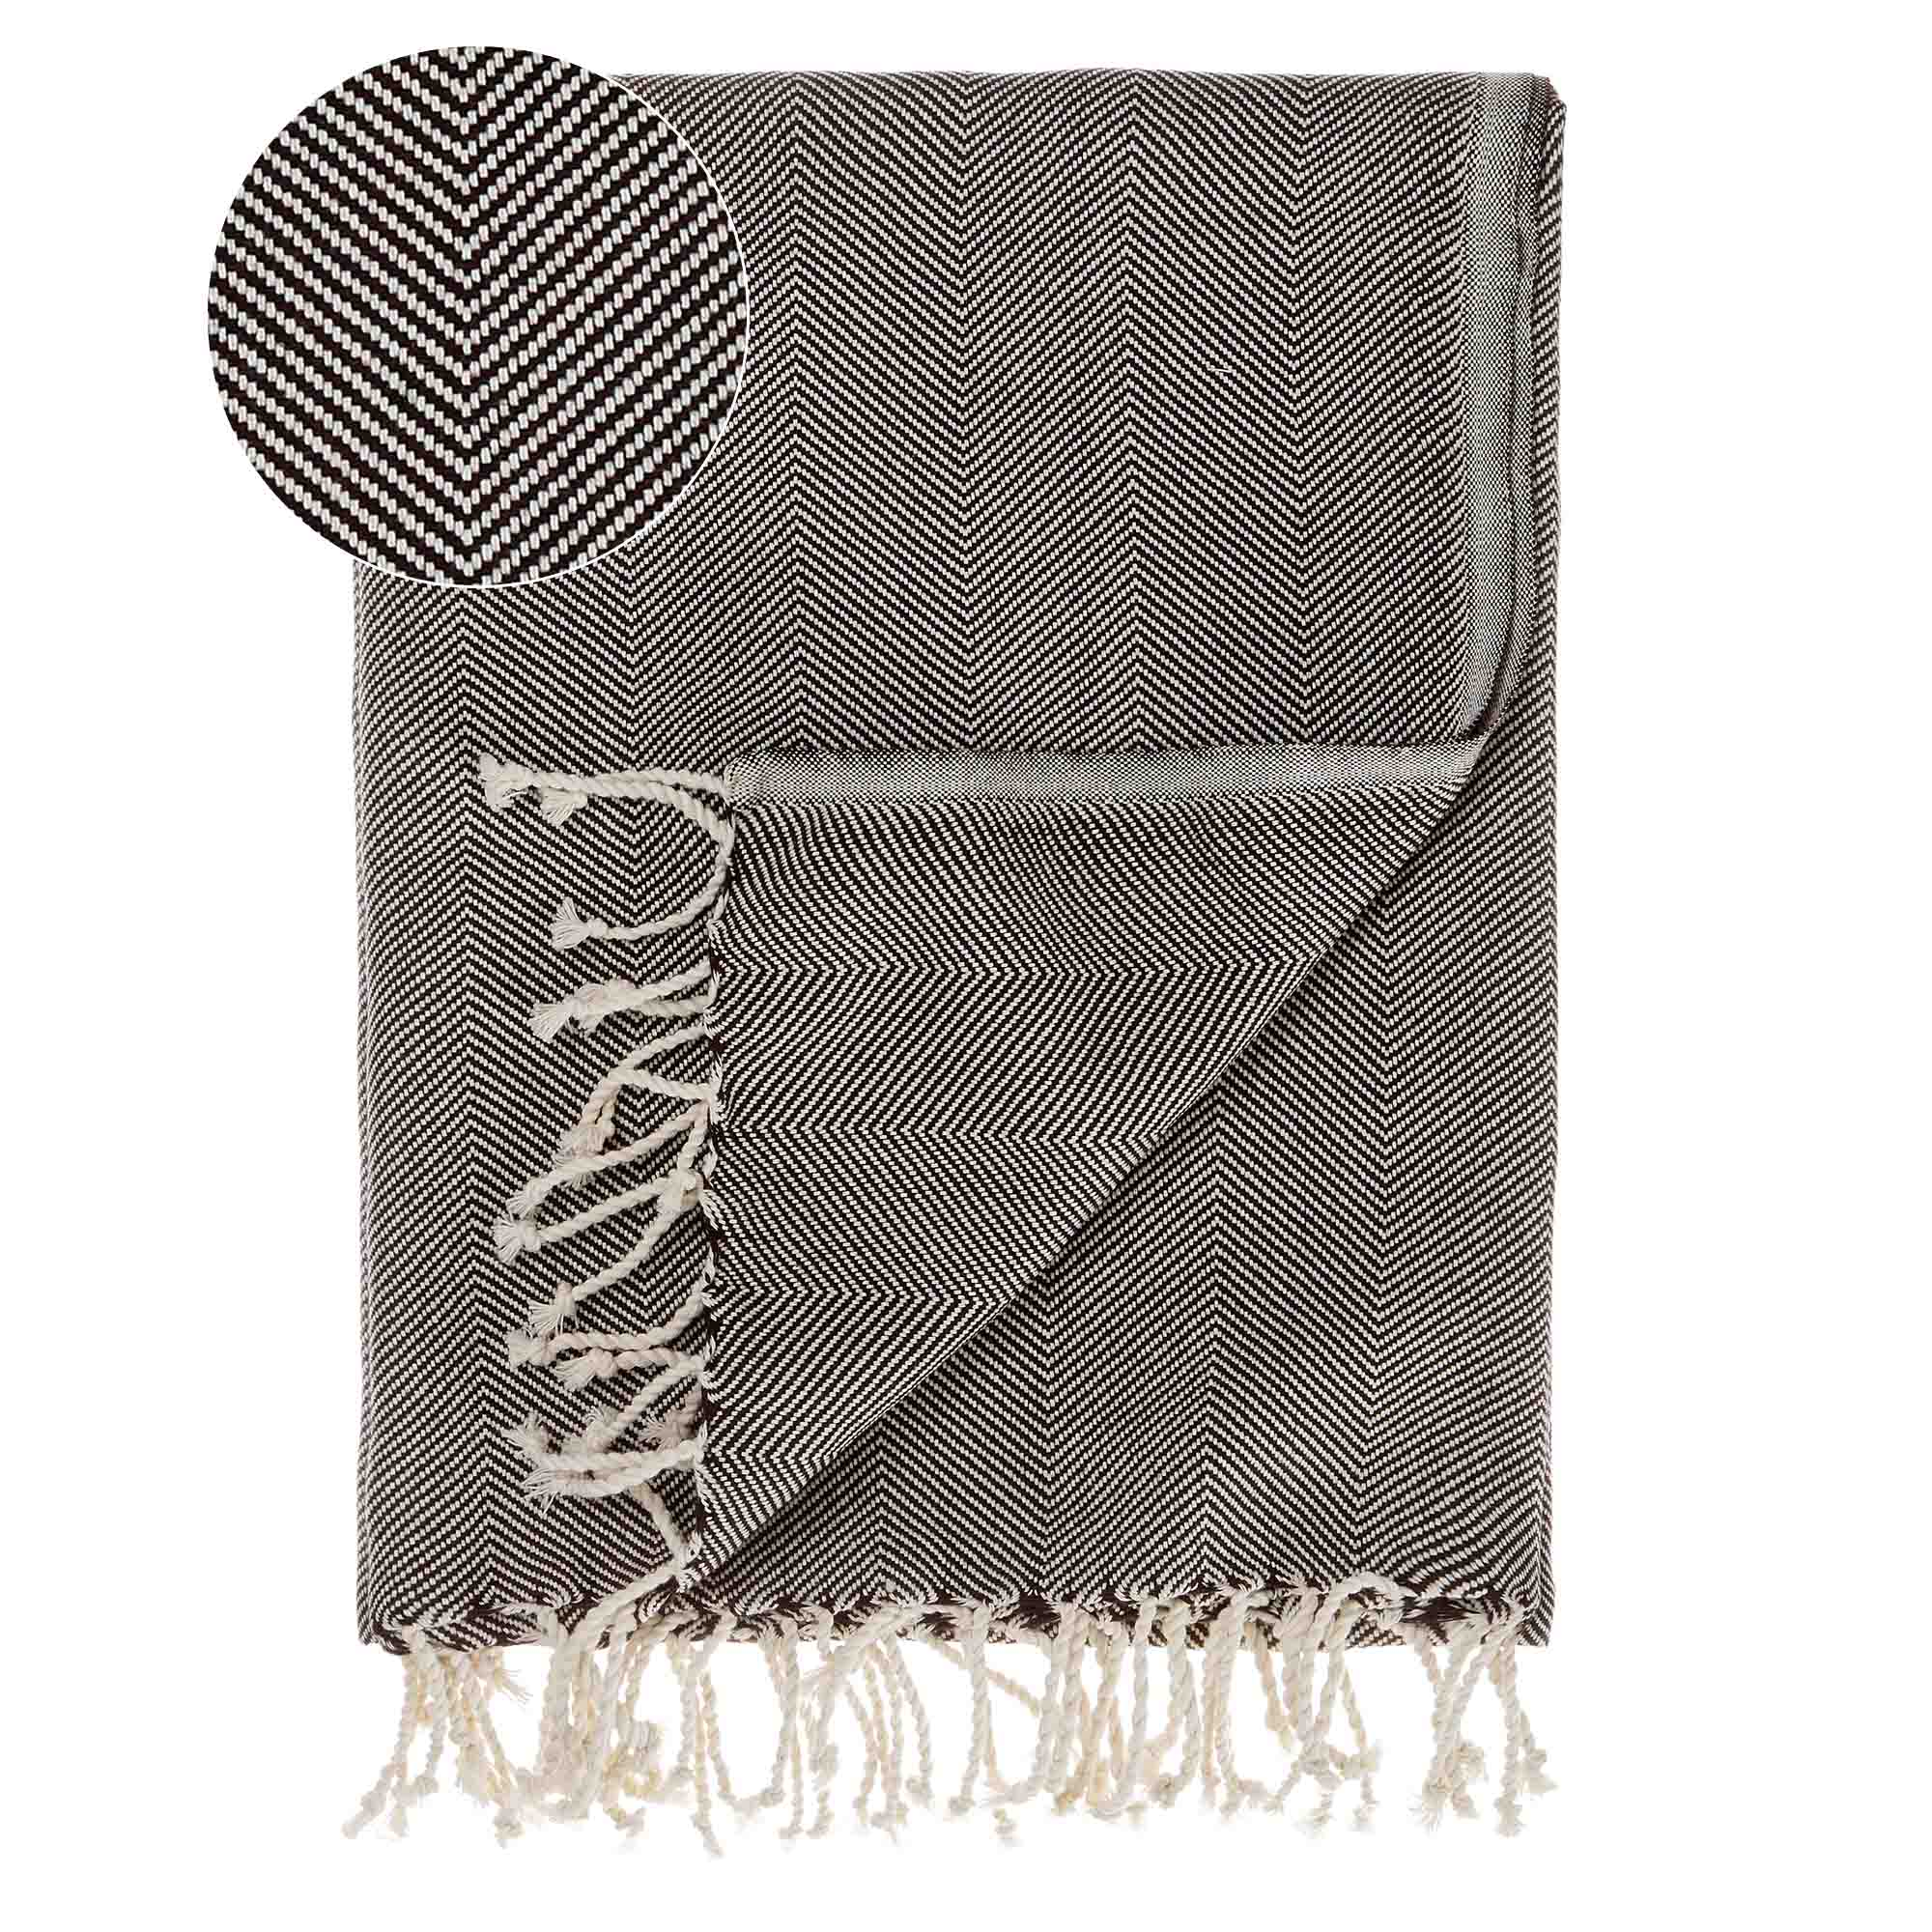 Laza Hammam Towel [Black/White]